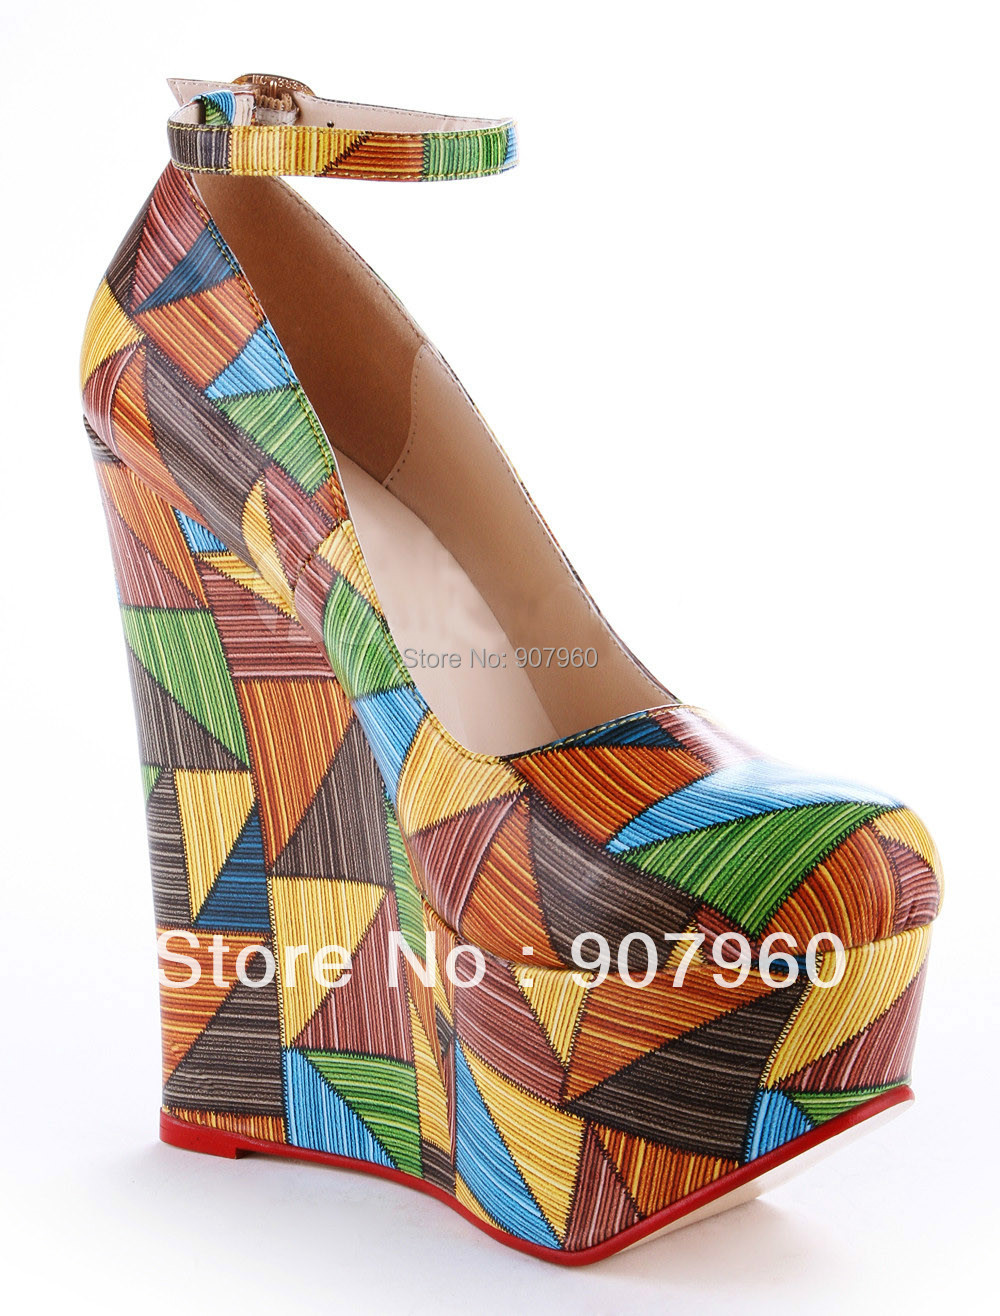 Cool Women Wedge Sandals 2014 New Wedges Lady Sandals Shoes Women Wedges